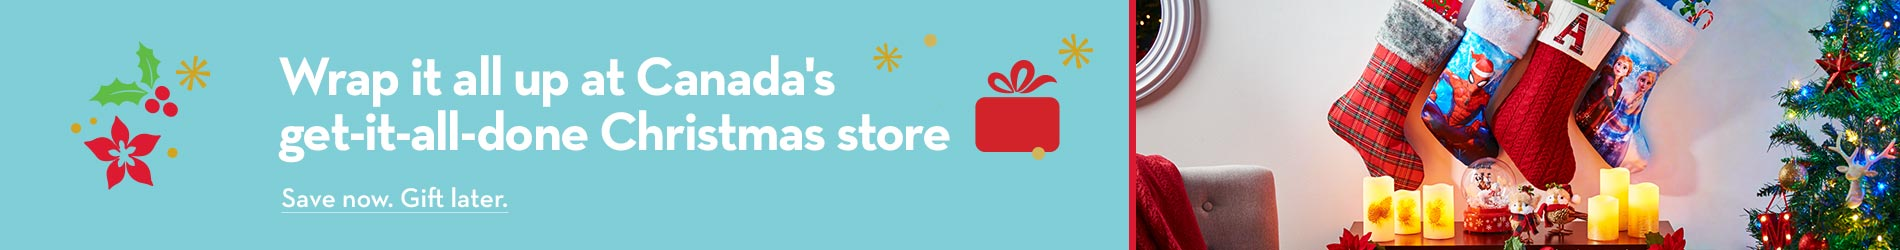 Wrap it all up at Canada's get-it-all-done Christmas store. Save now. Gift later.